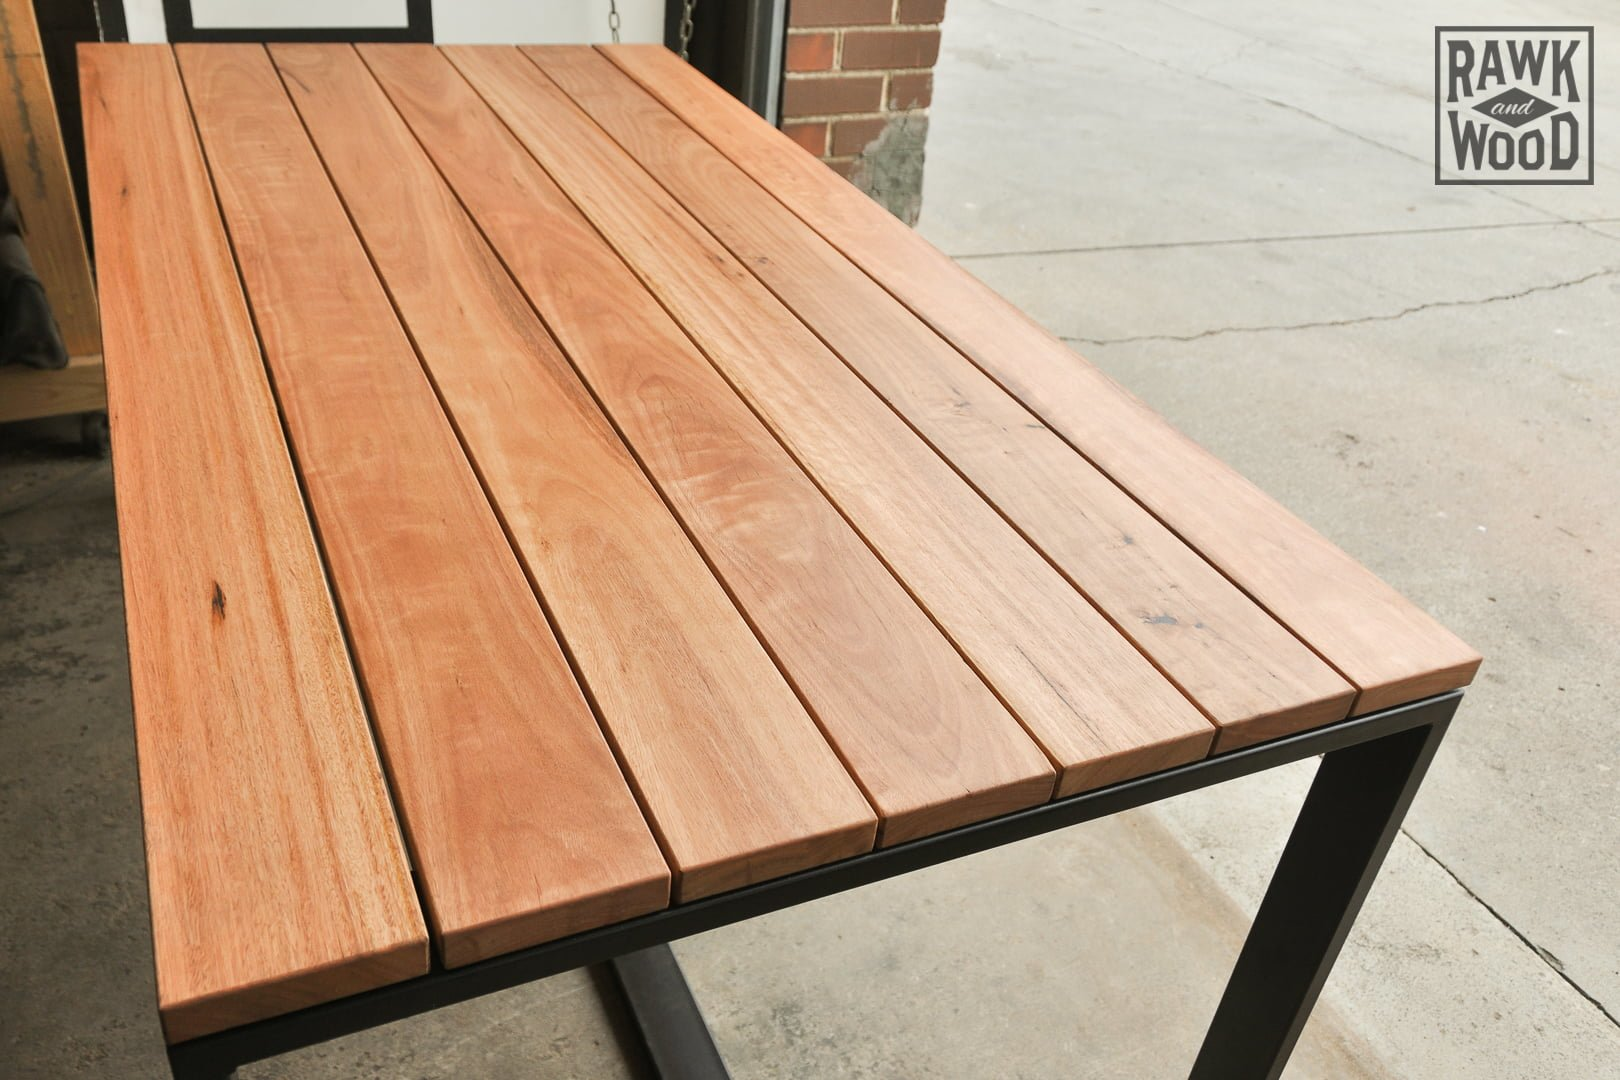 Recycled-Timber-Outdoor-Setting, made in Melbourne by Rawk and Wood